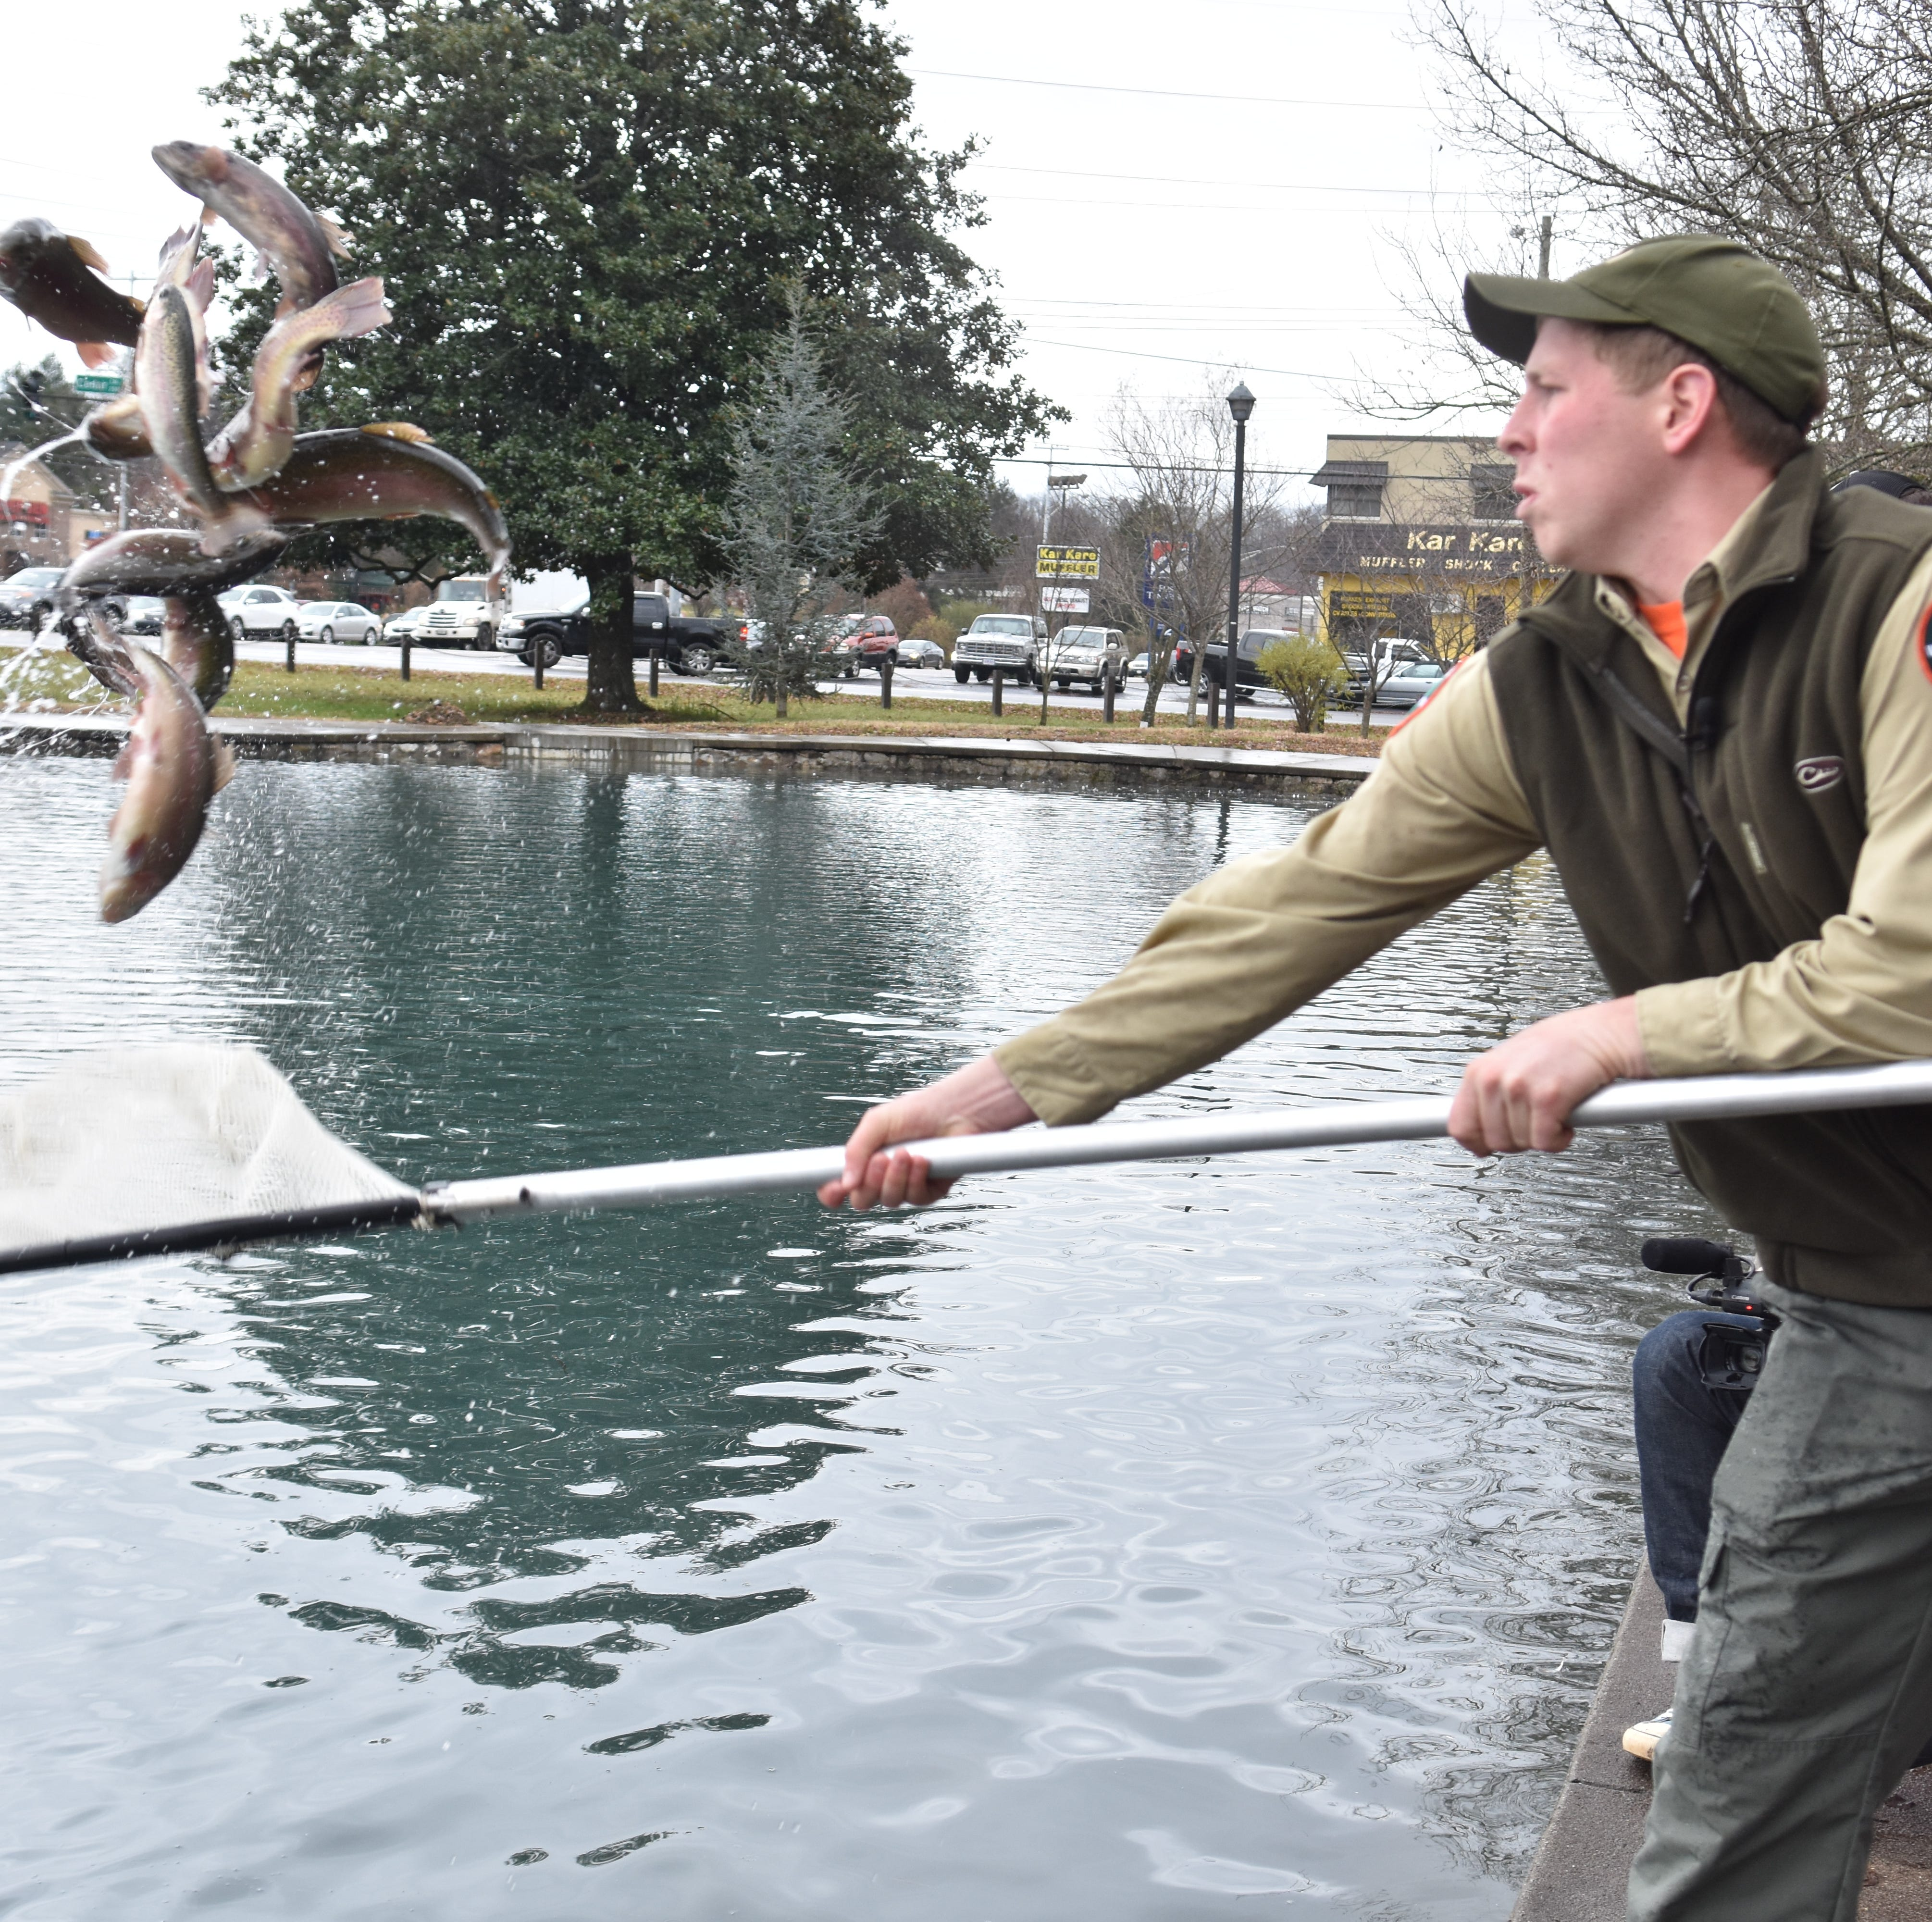 Fountain City Lake stocked with rainbow trout as cleanup efforts continue